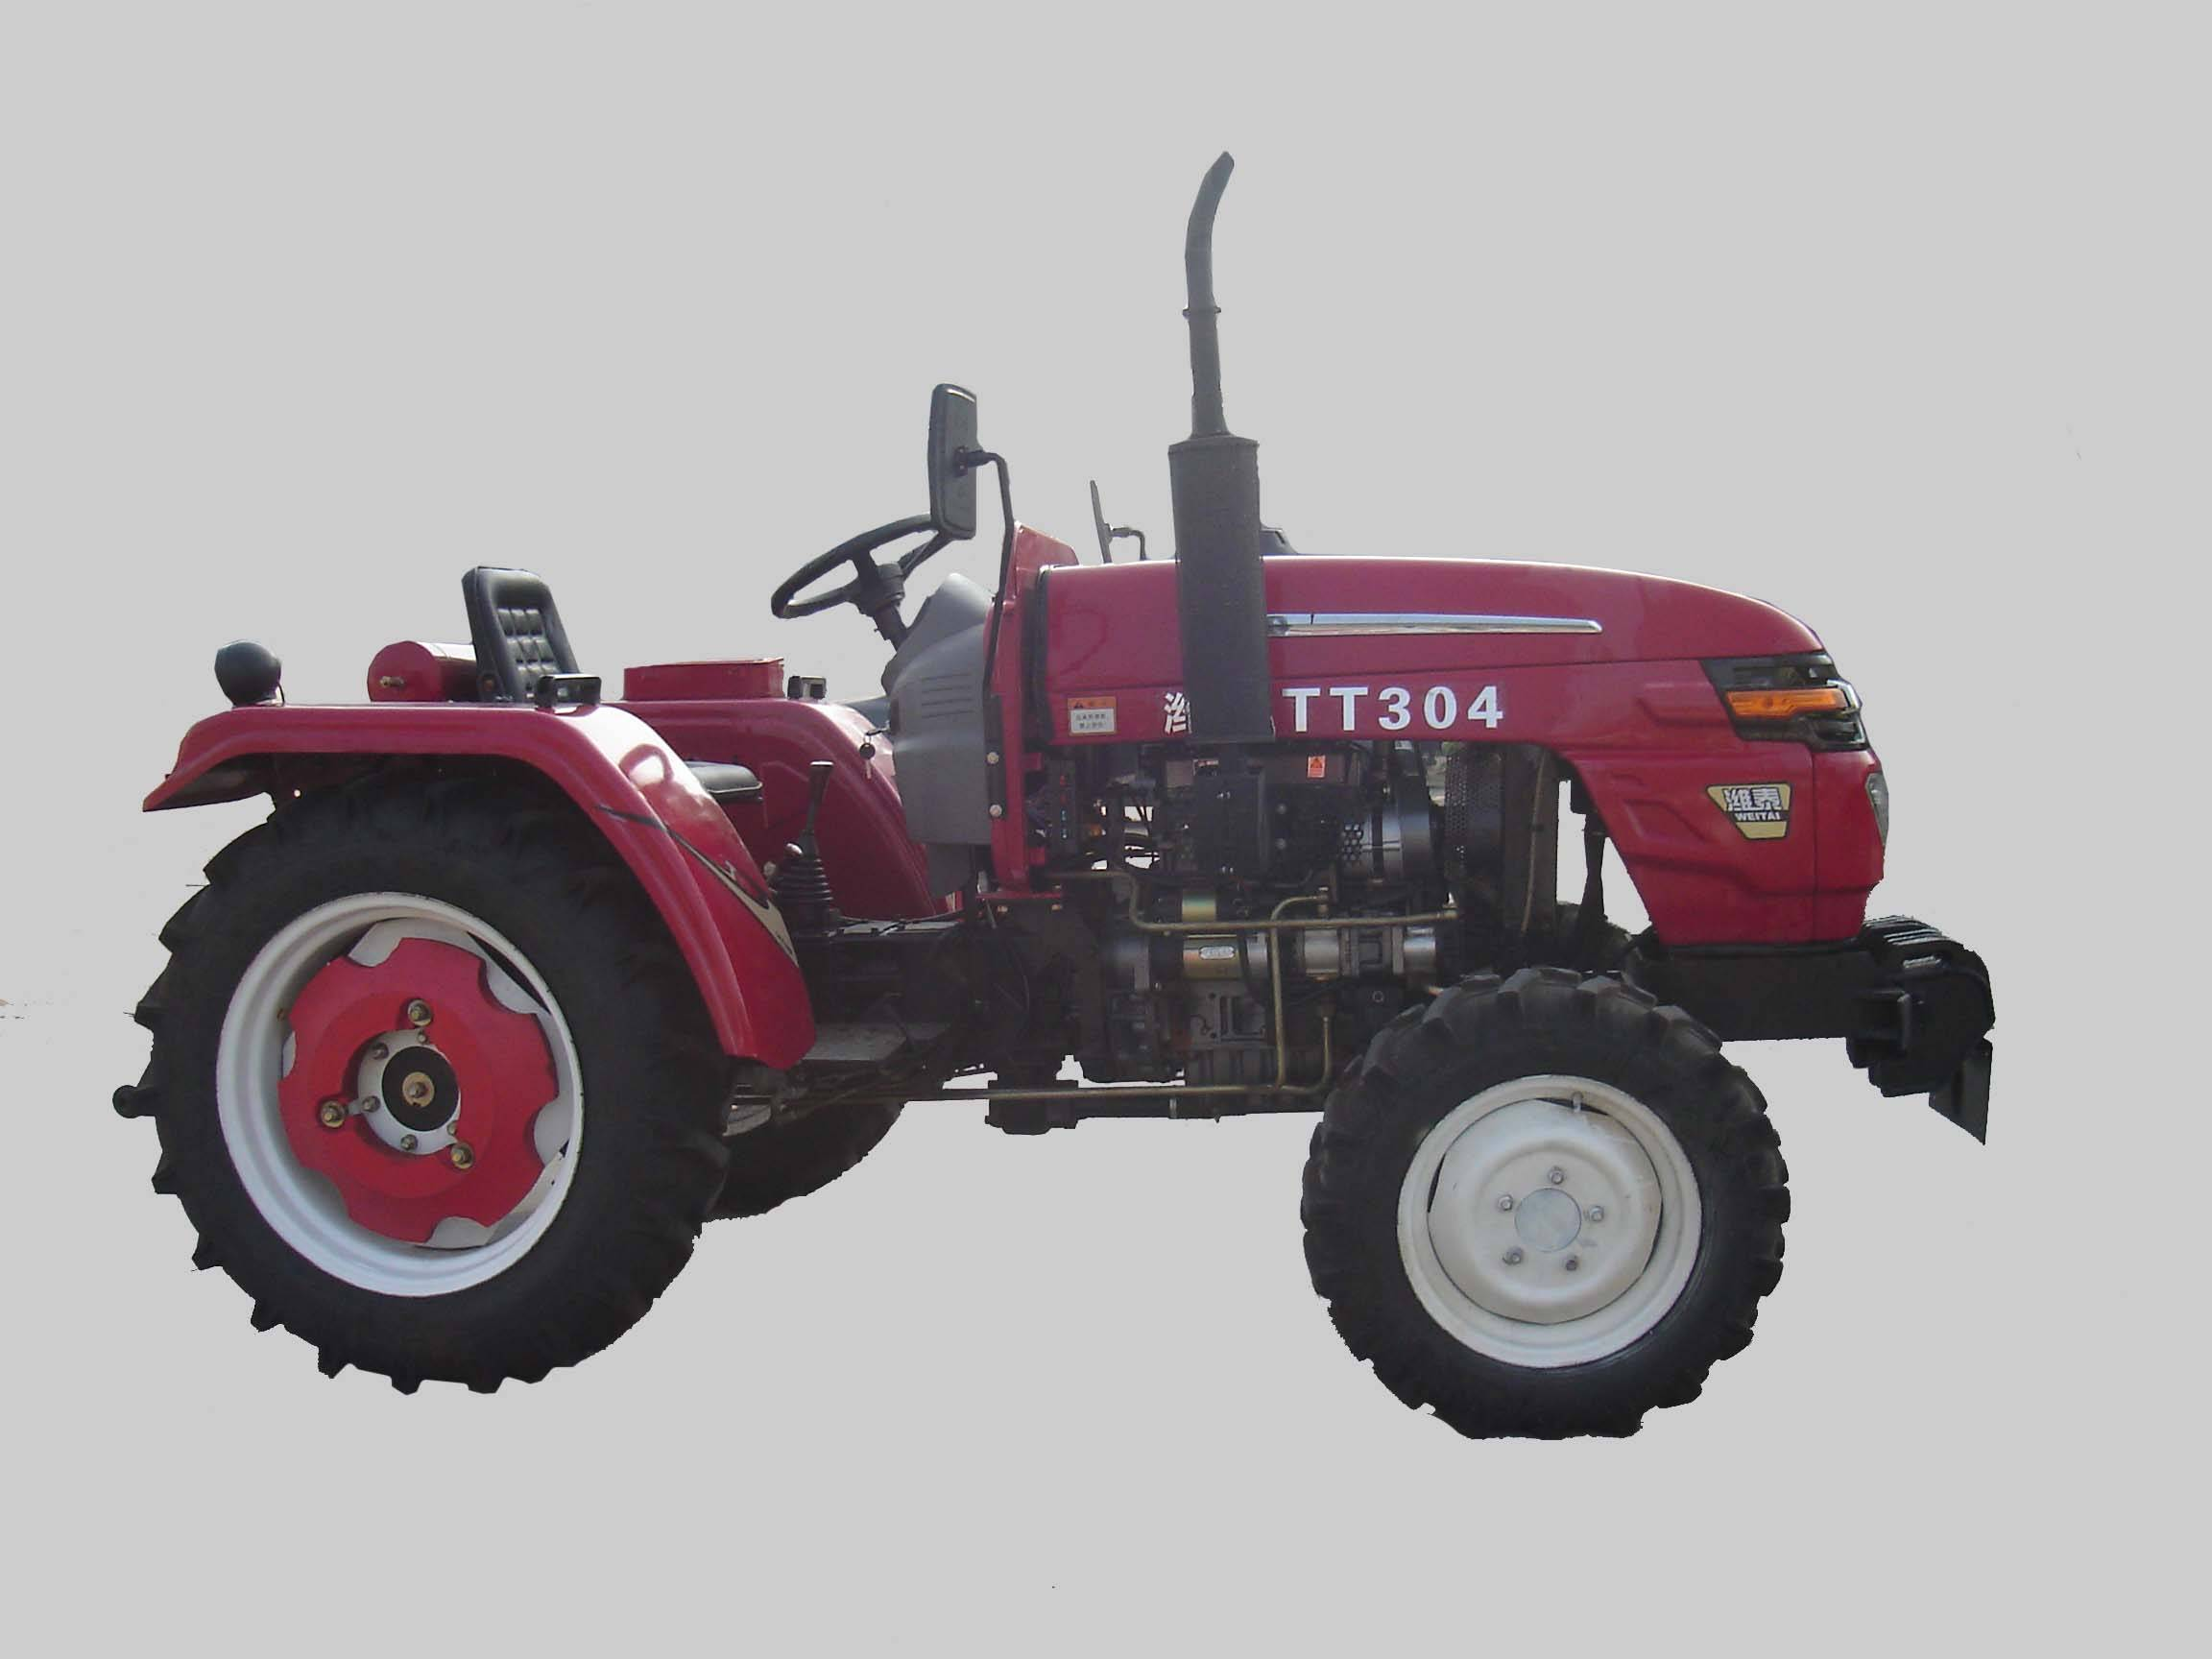 32HP 4x4 mini farm tractor Model TY324